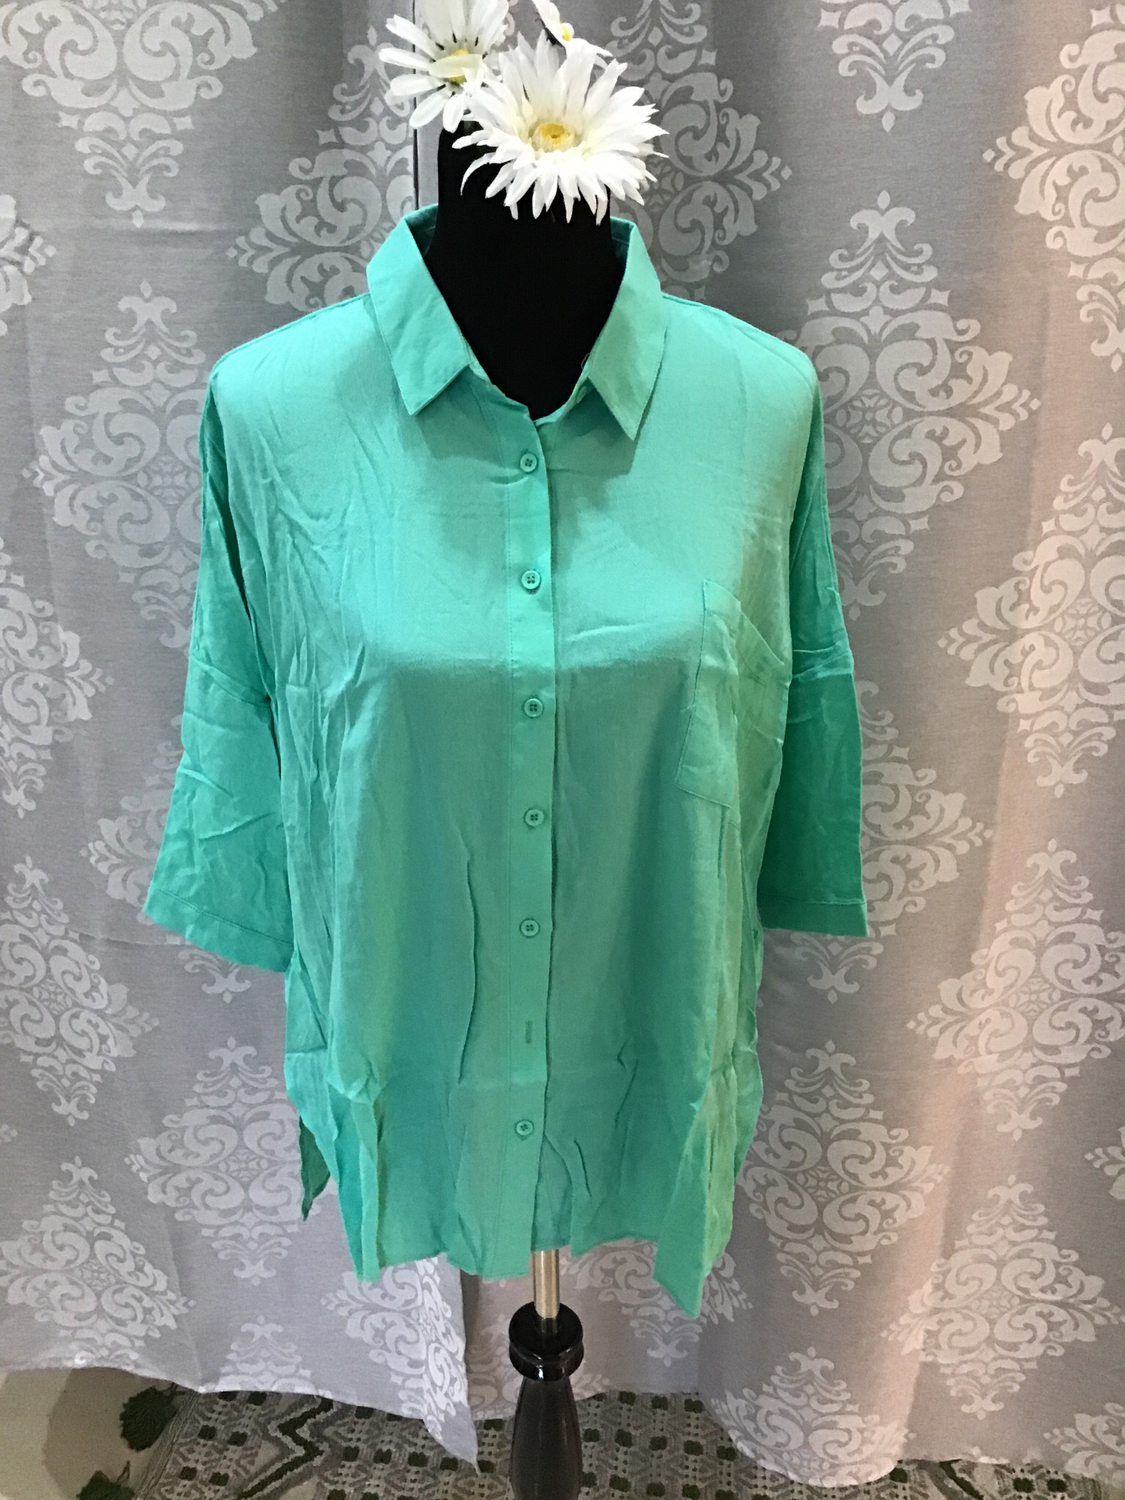 Teal 3/4 sleeve top